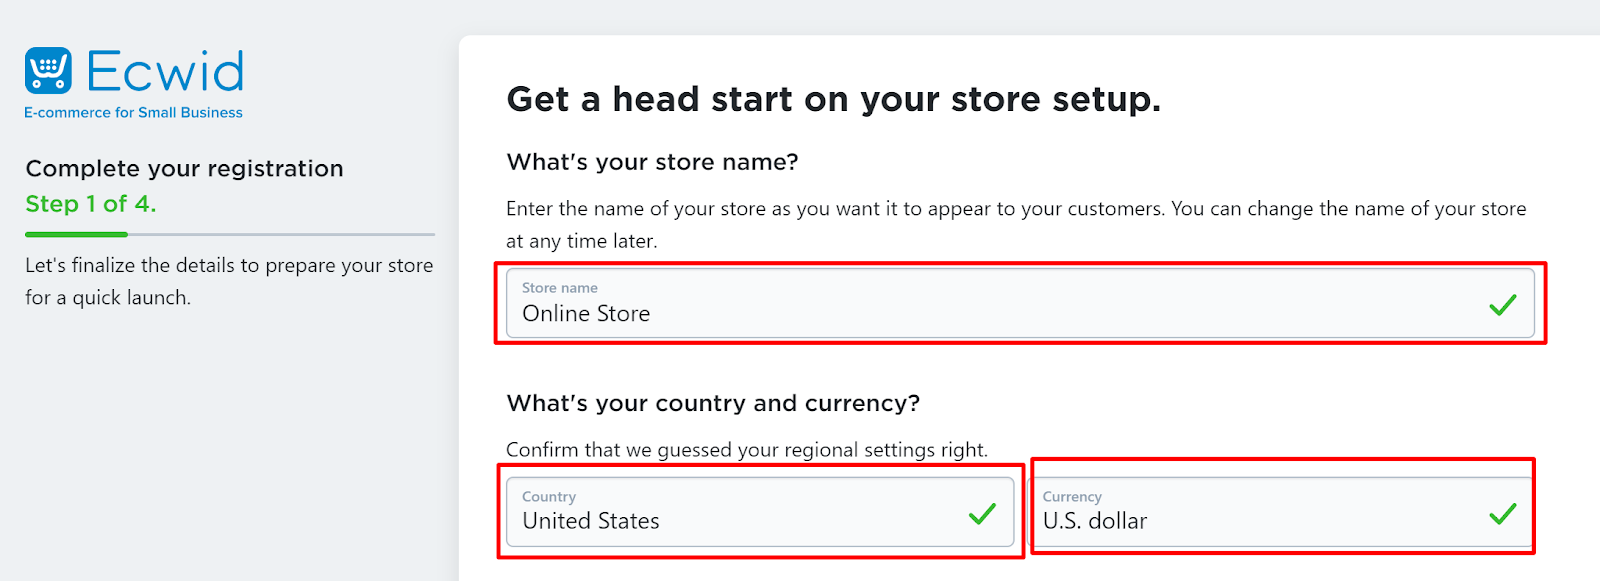 enter in your store name, country, and currency